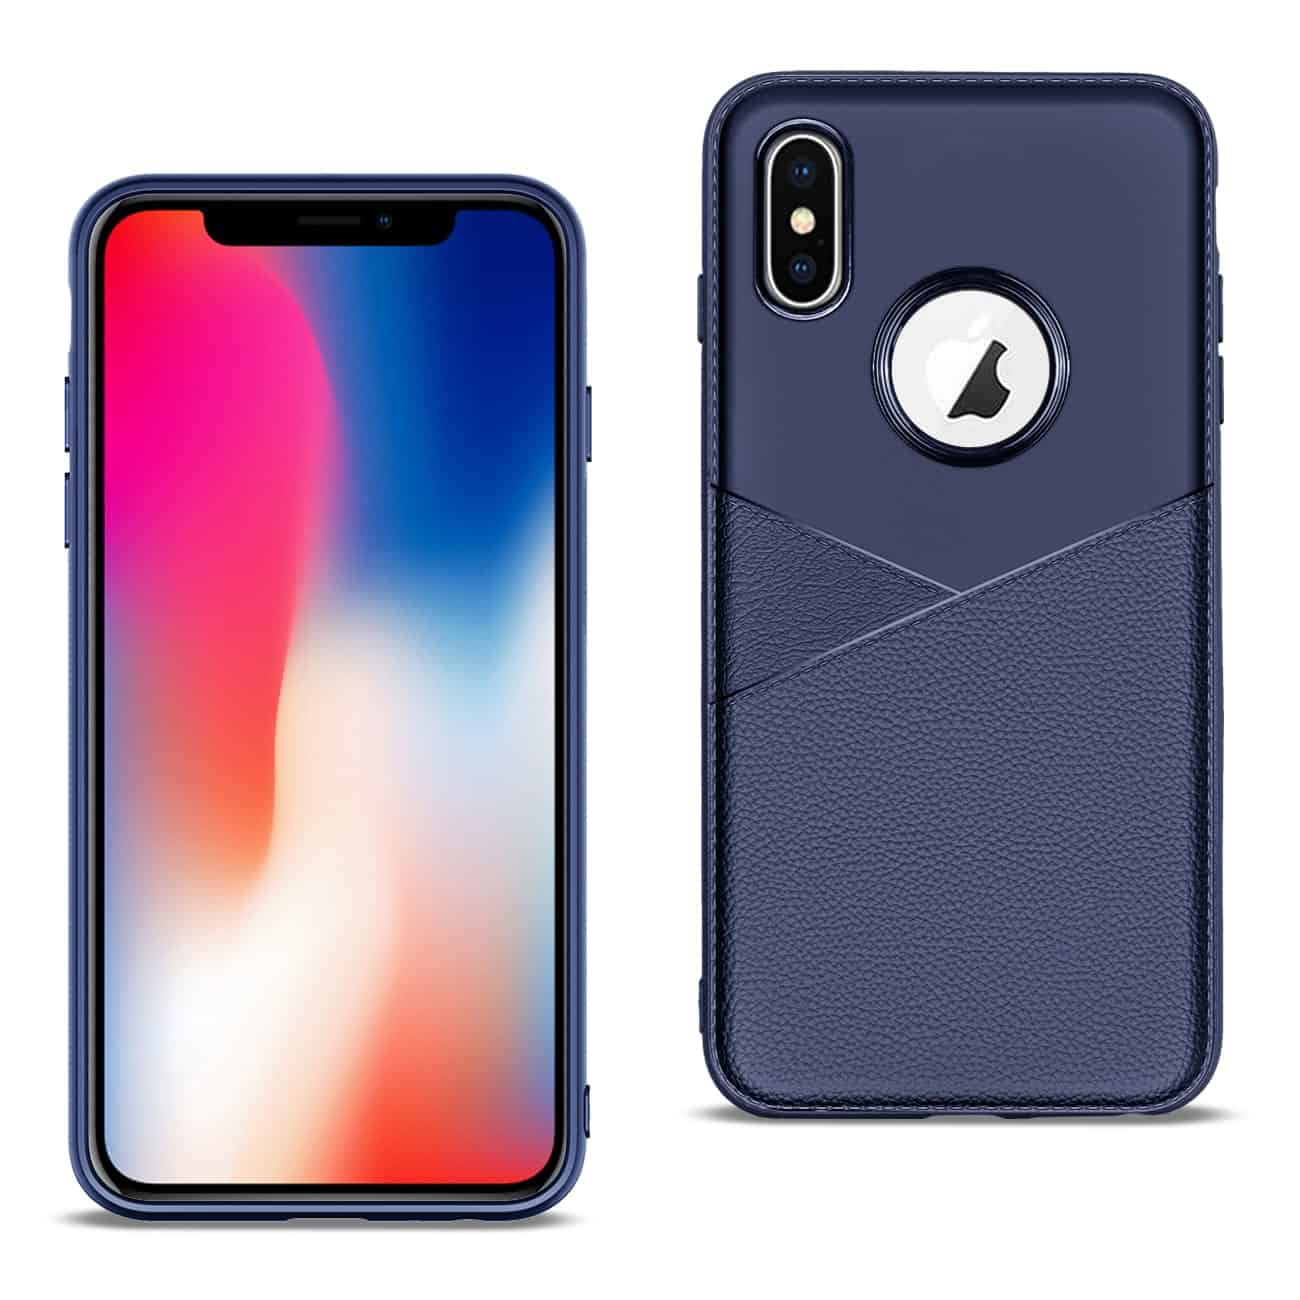 Apple iPhone X Good quality phone case in Blue